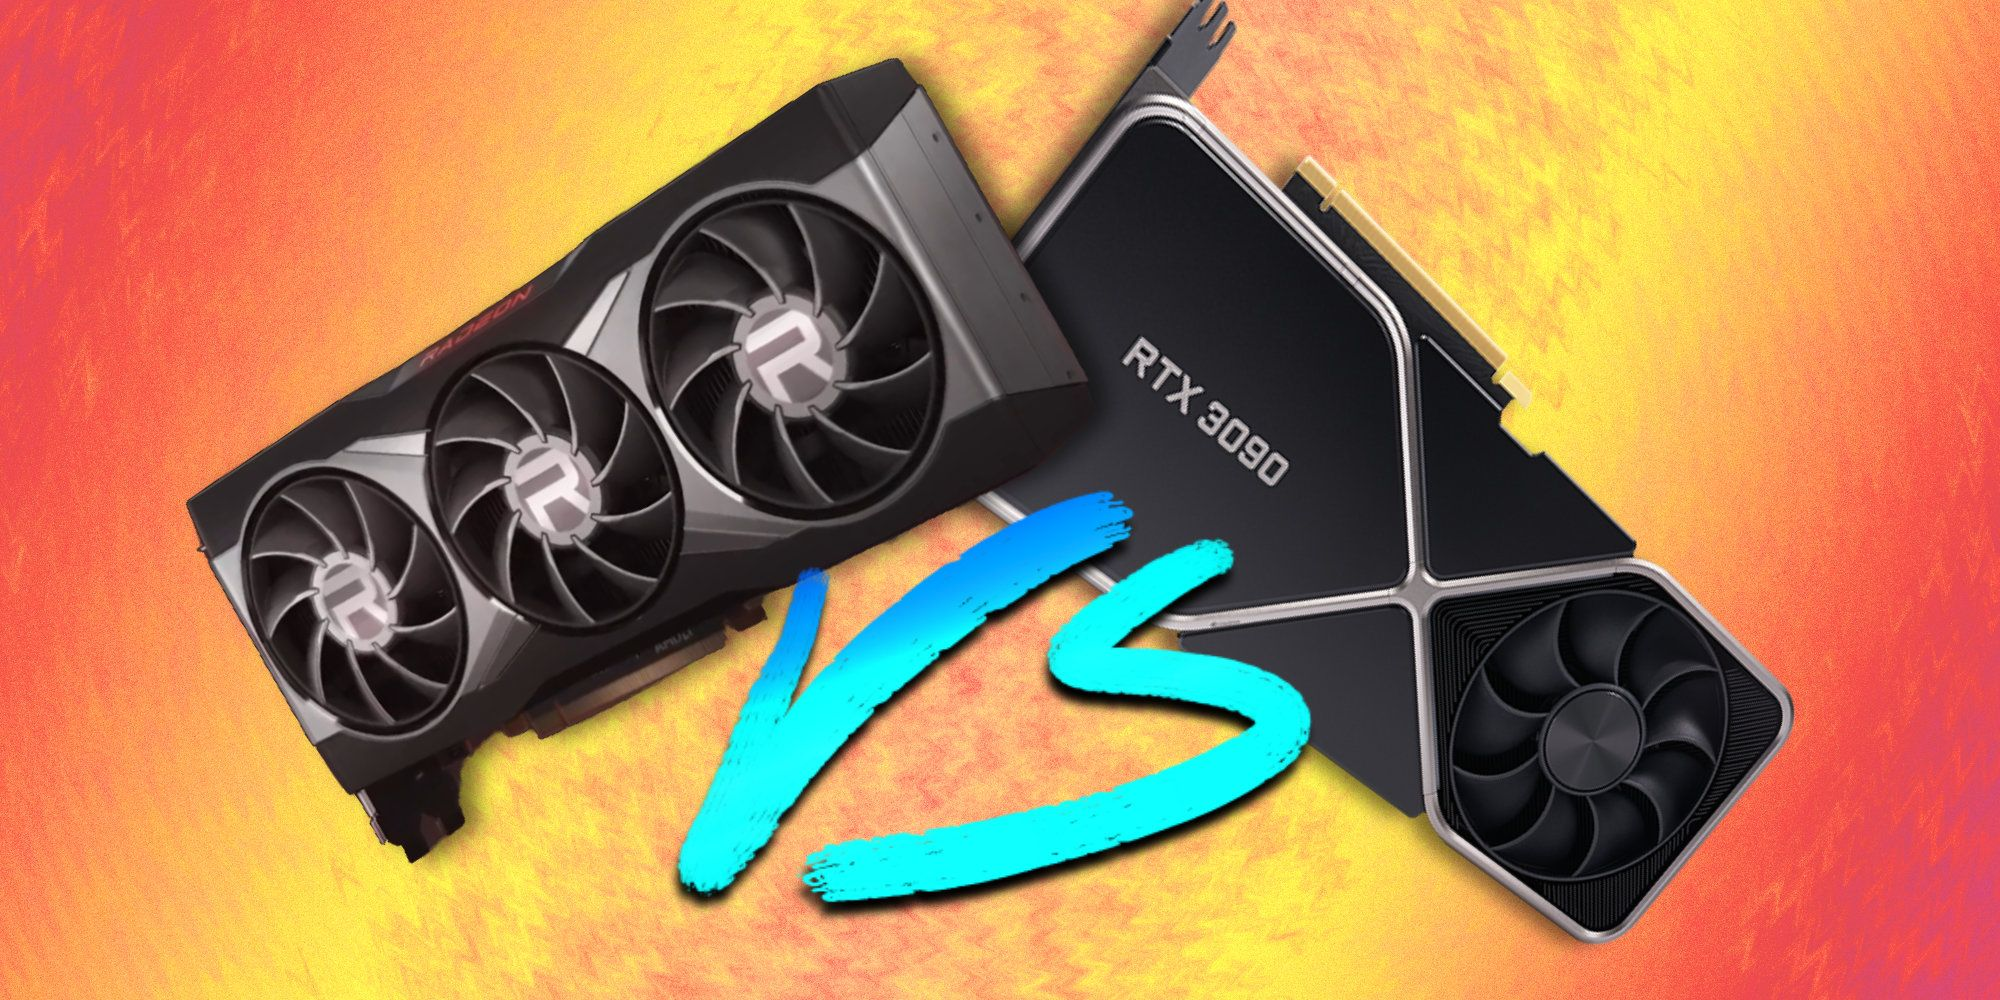 Radeon RX 6900 XT Vs. Nvidia RTX 3090: Big Navi & BFGPU Compared